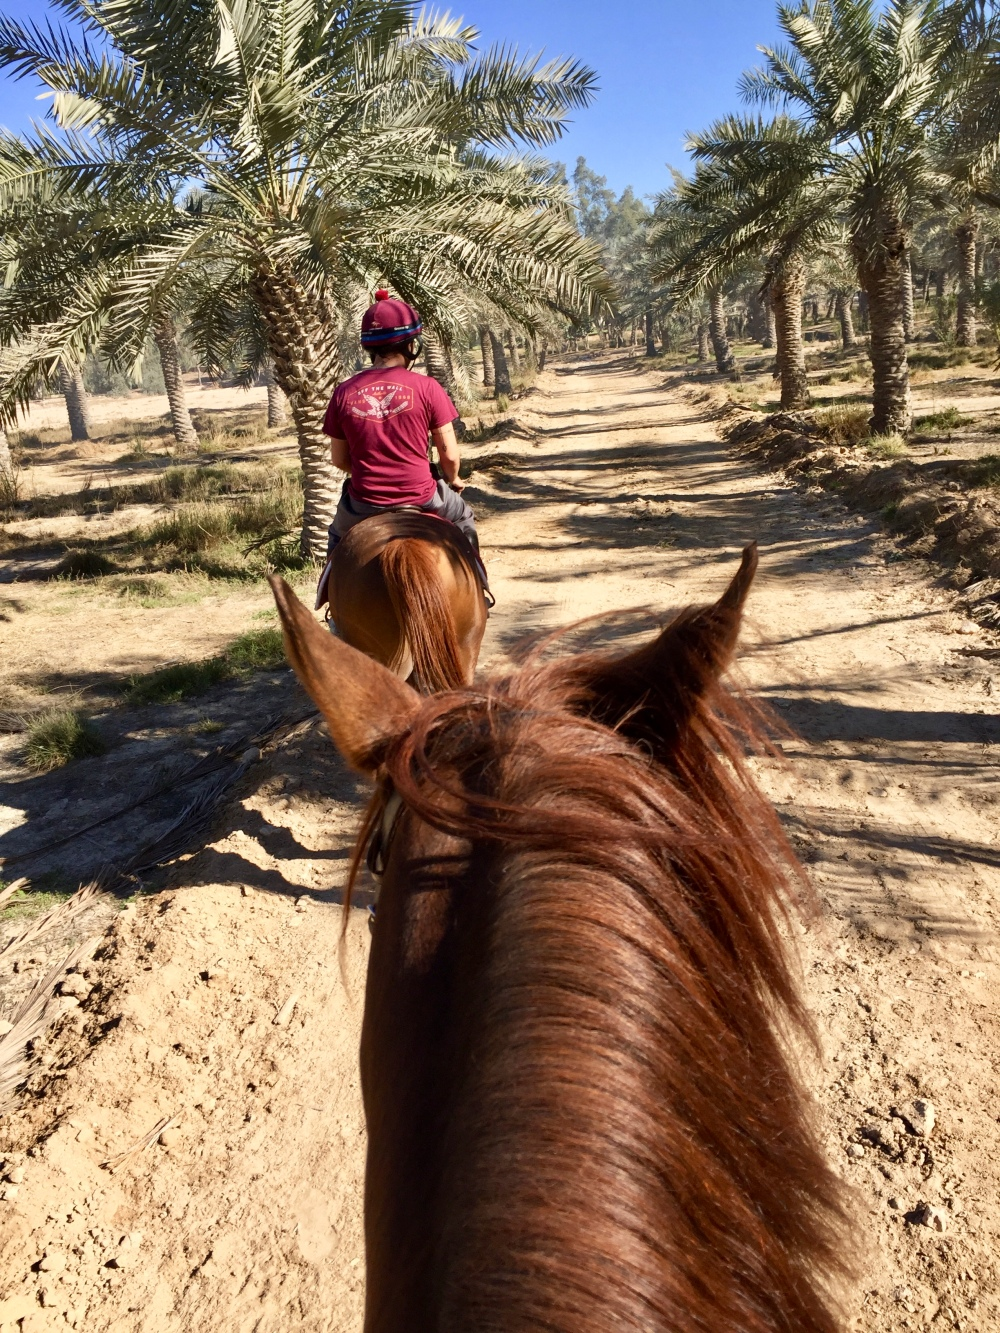 Al Samariyah Equestrian Centre - Hack Ride on Patcher on Sheik Faisal's Estate